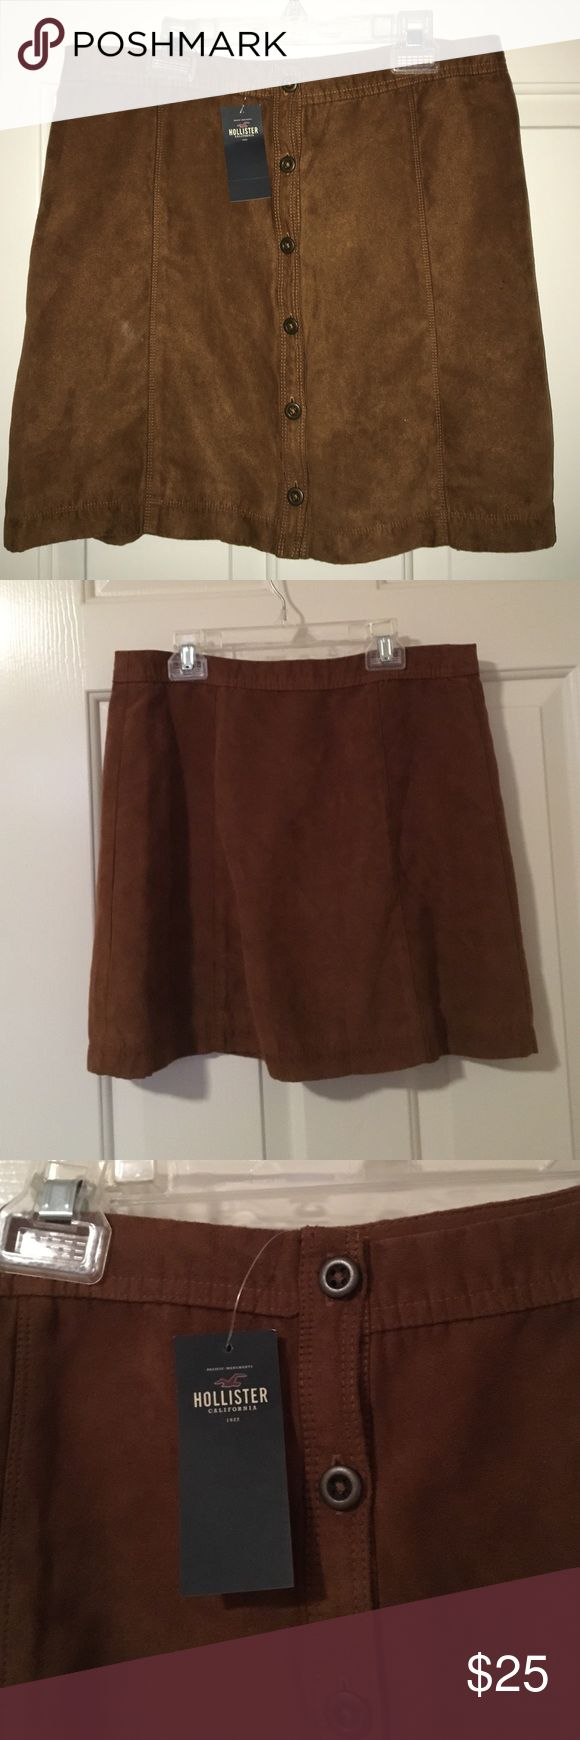 Hollister Brown Suede Button Up Skirt brown suede Hollister skirt with buttons. brand new, never worn, with original tags Hollister Skirts Circle & Skater